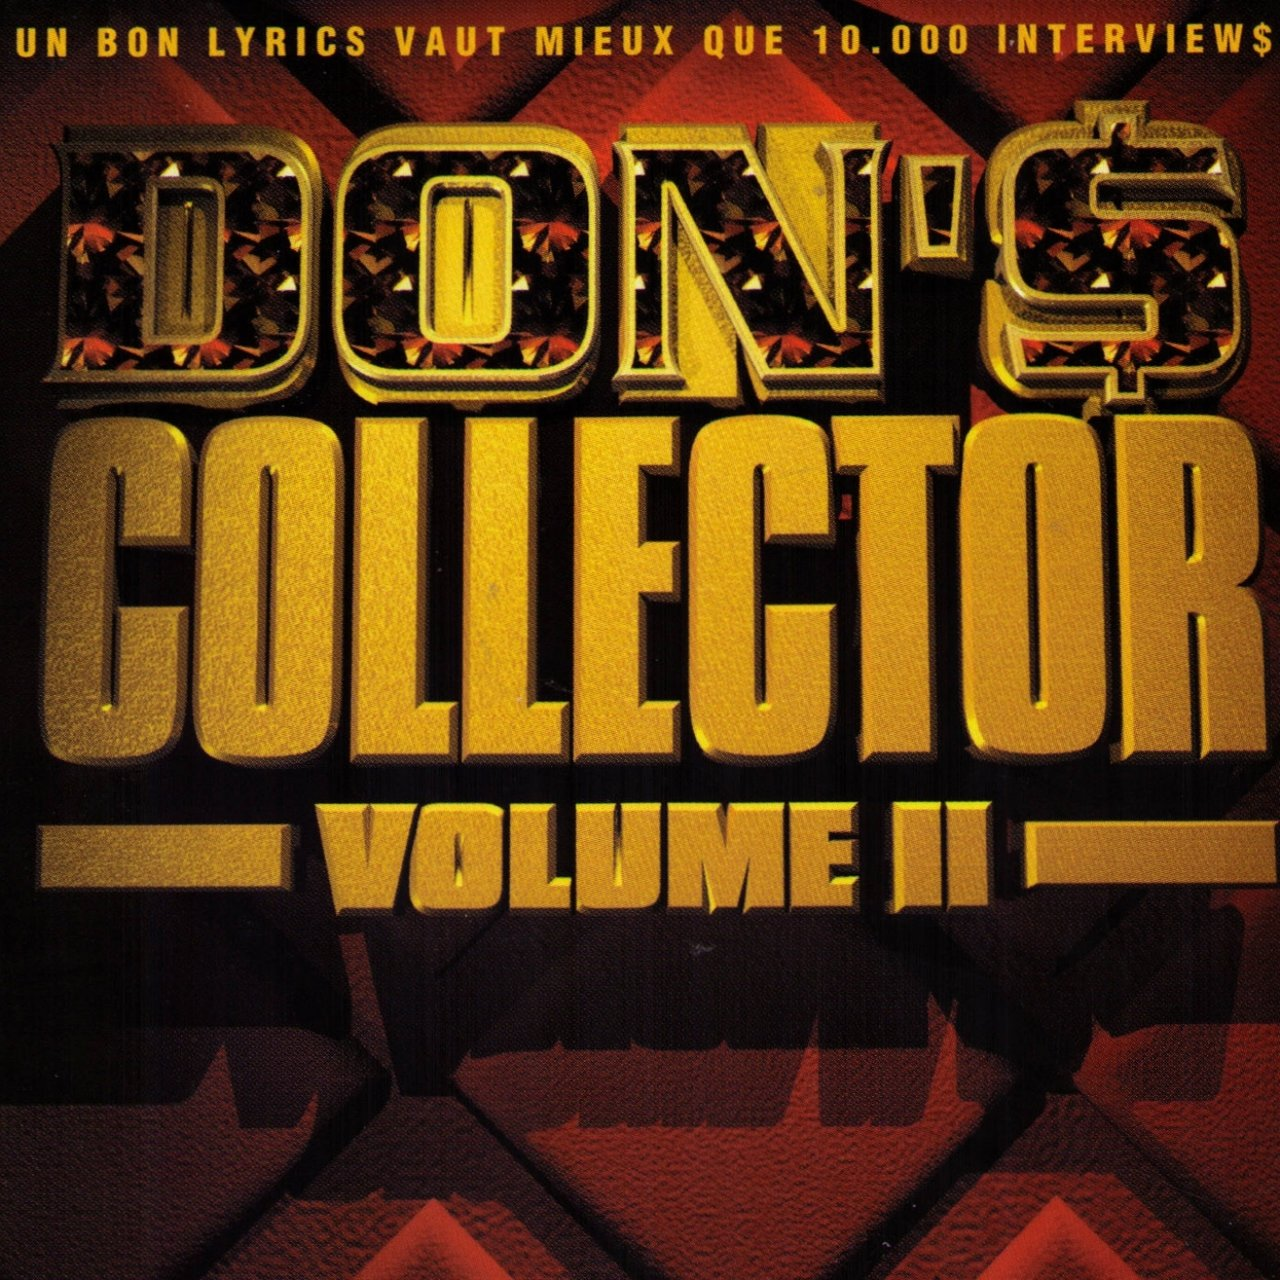 Don's Collector Volume II